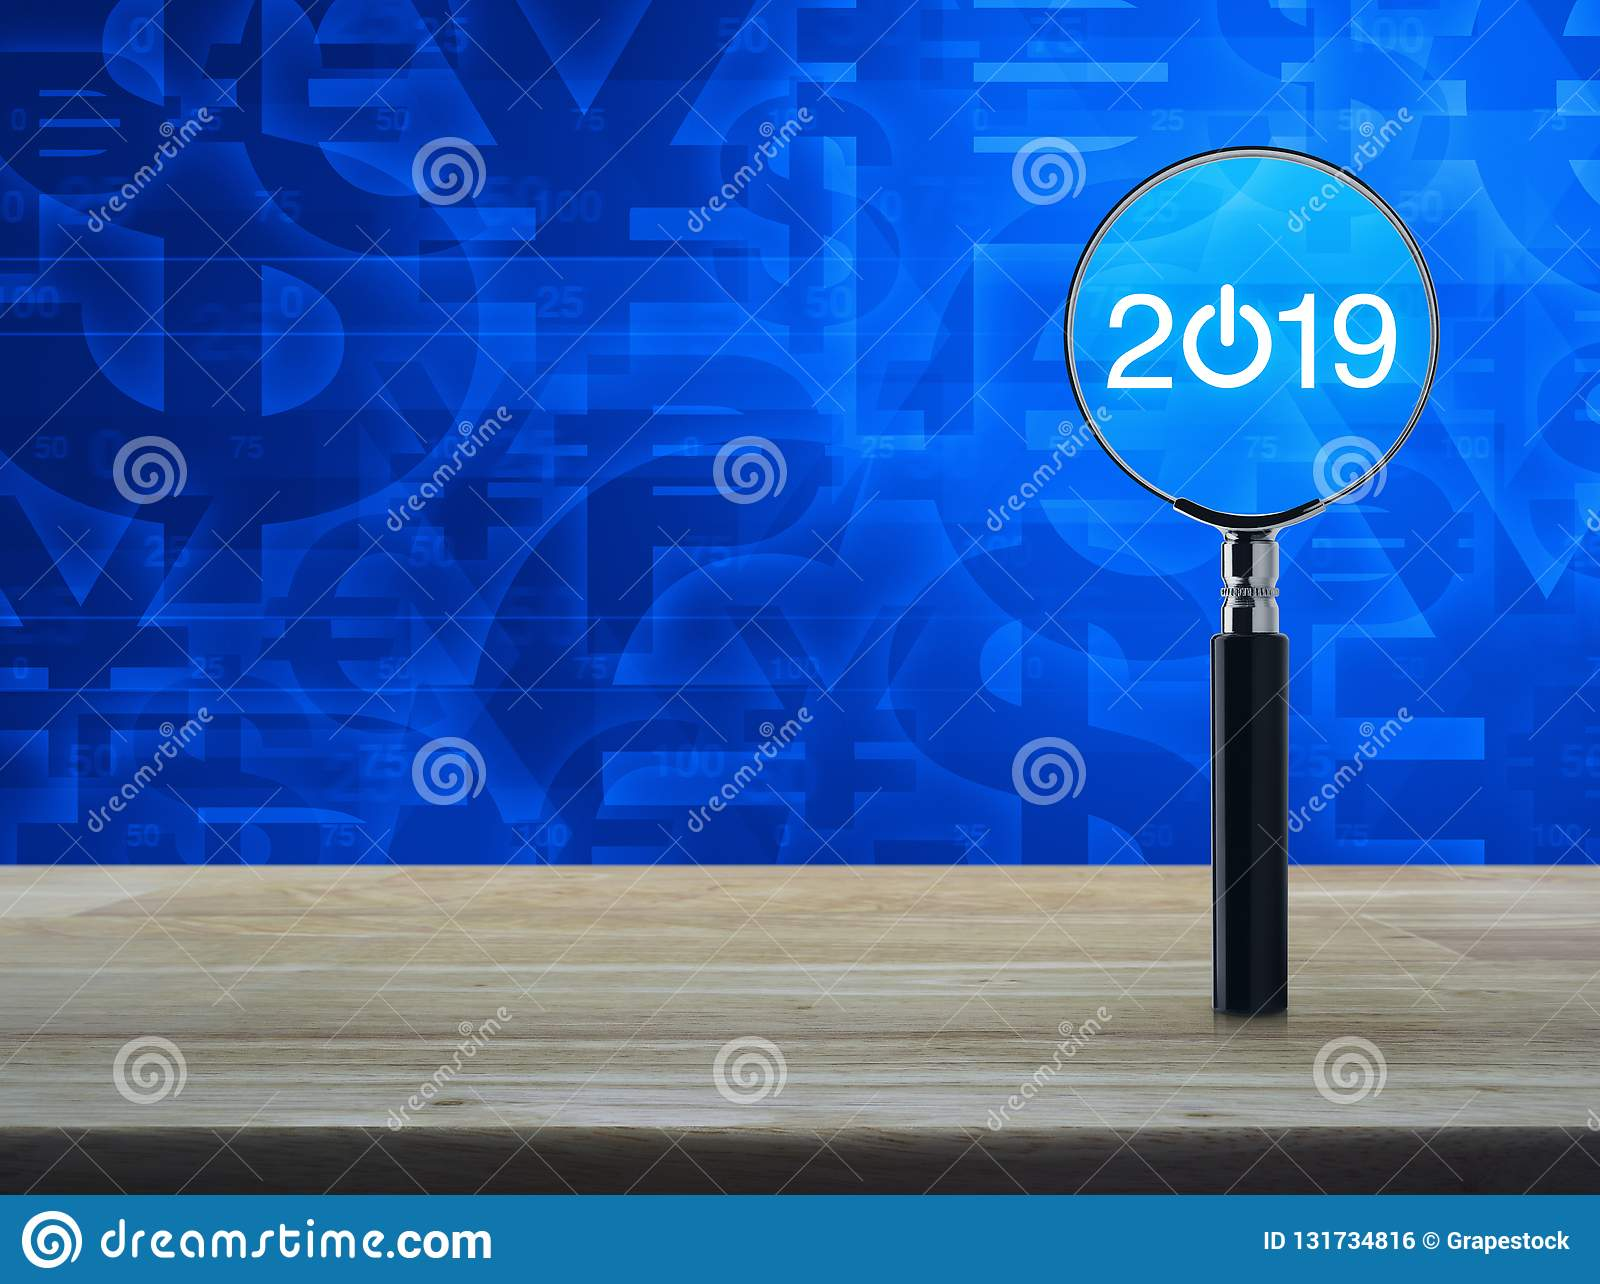 2019 start up flat icon with magnifying glass on wooden table over currency symbol blue tone background, Business happy new year